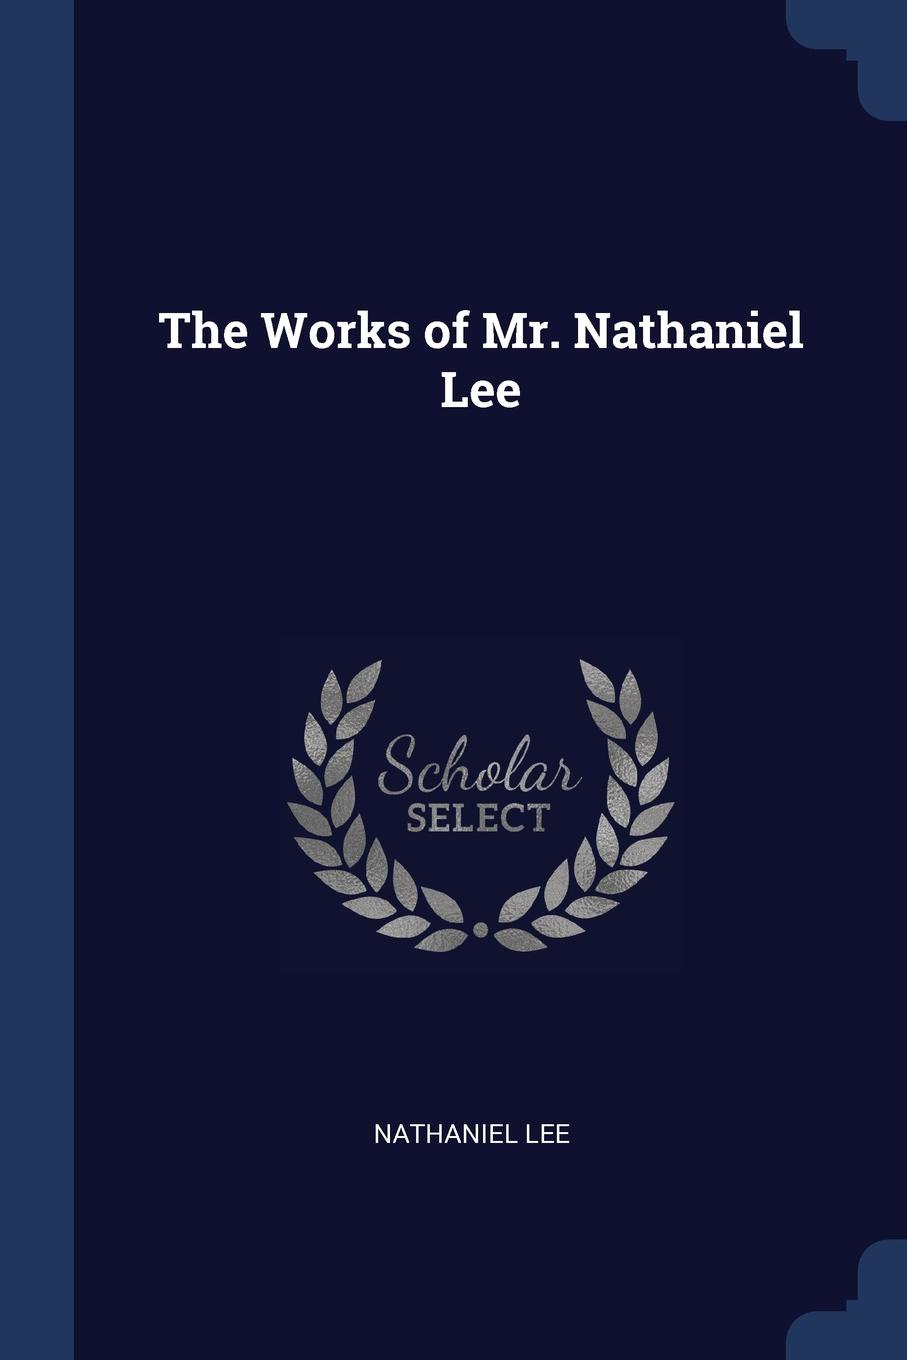 The Works of Mr. Nathaniel Lee